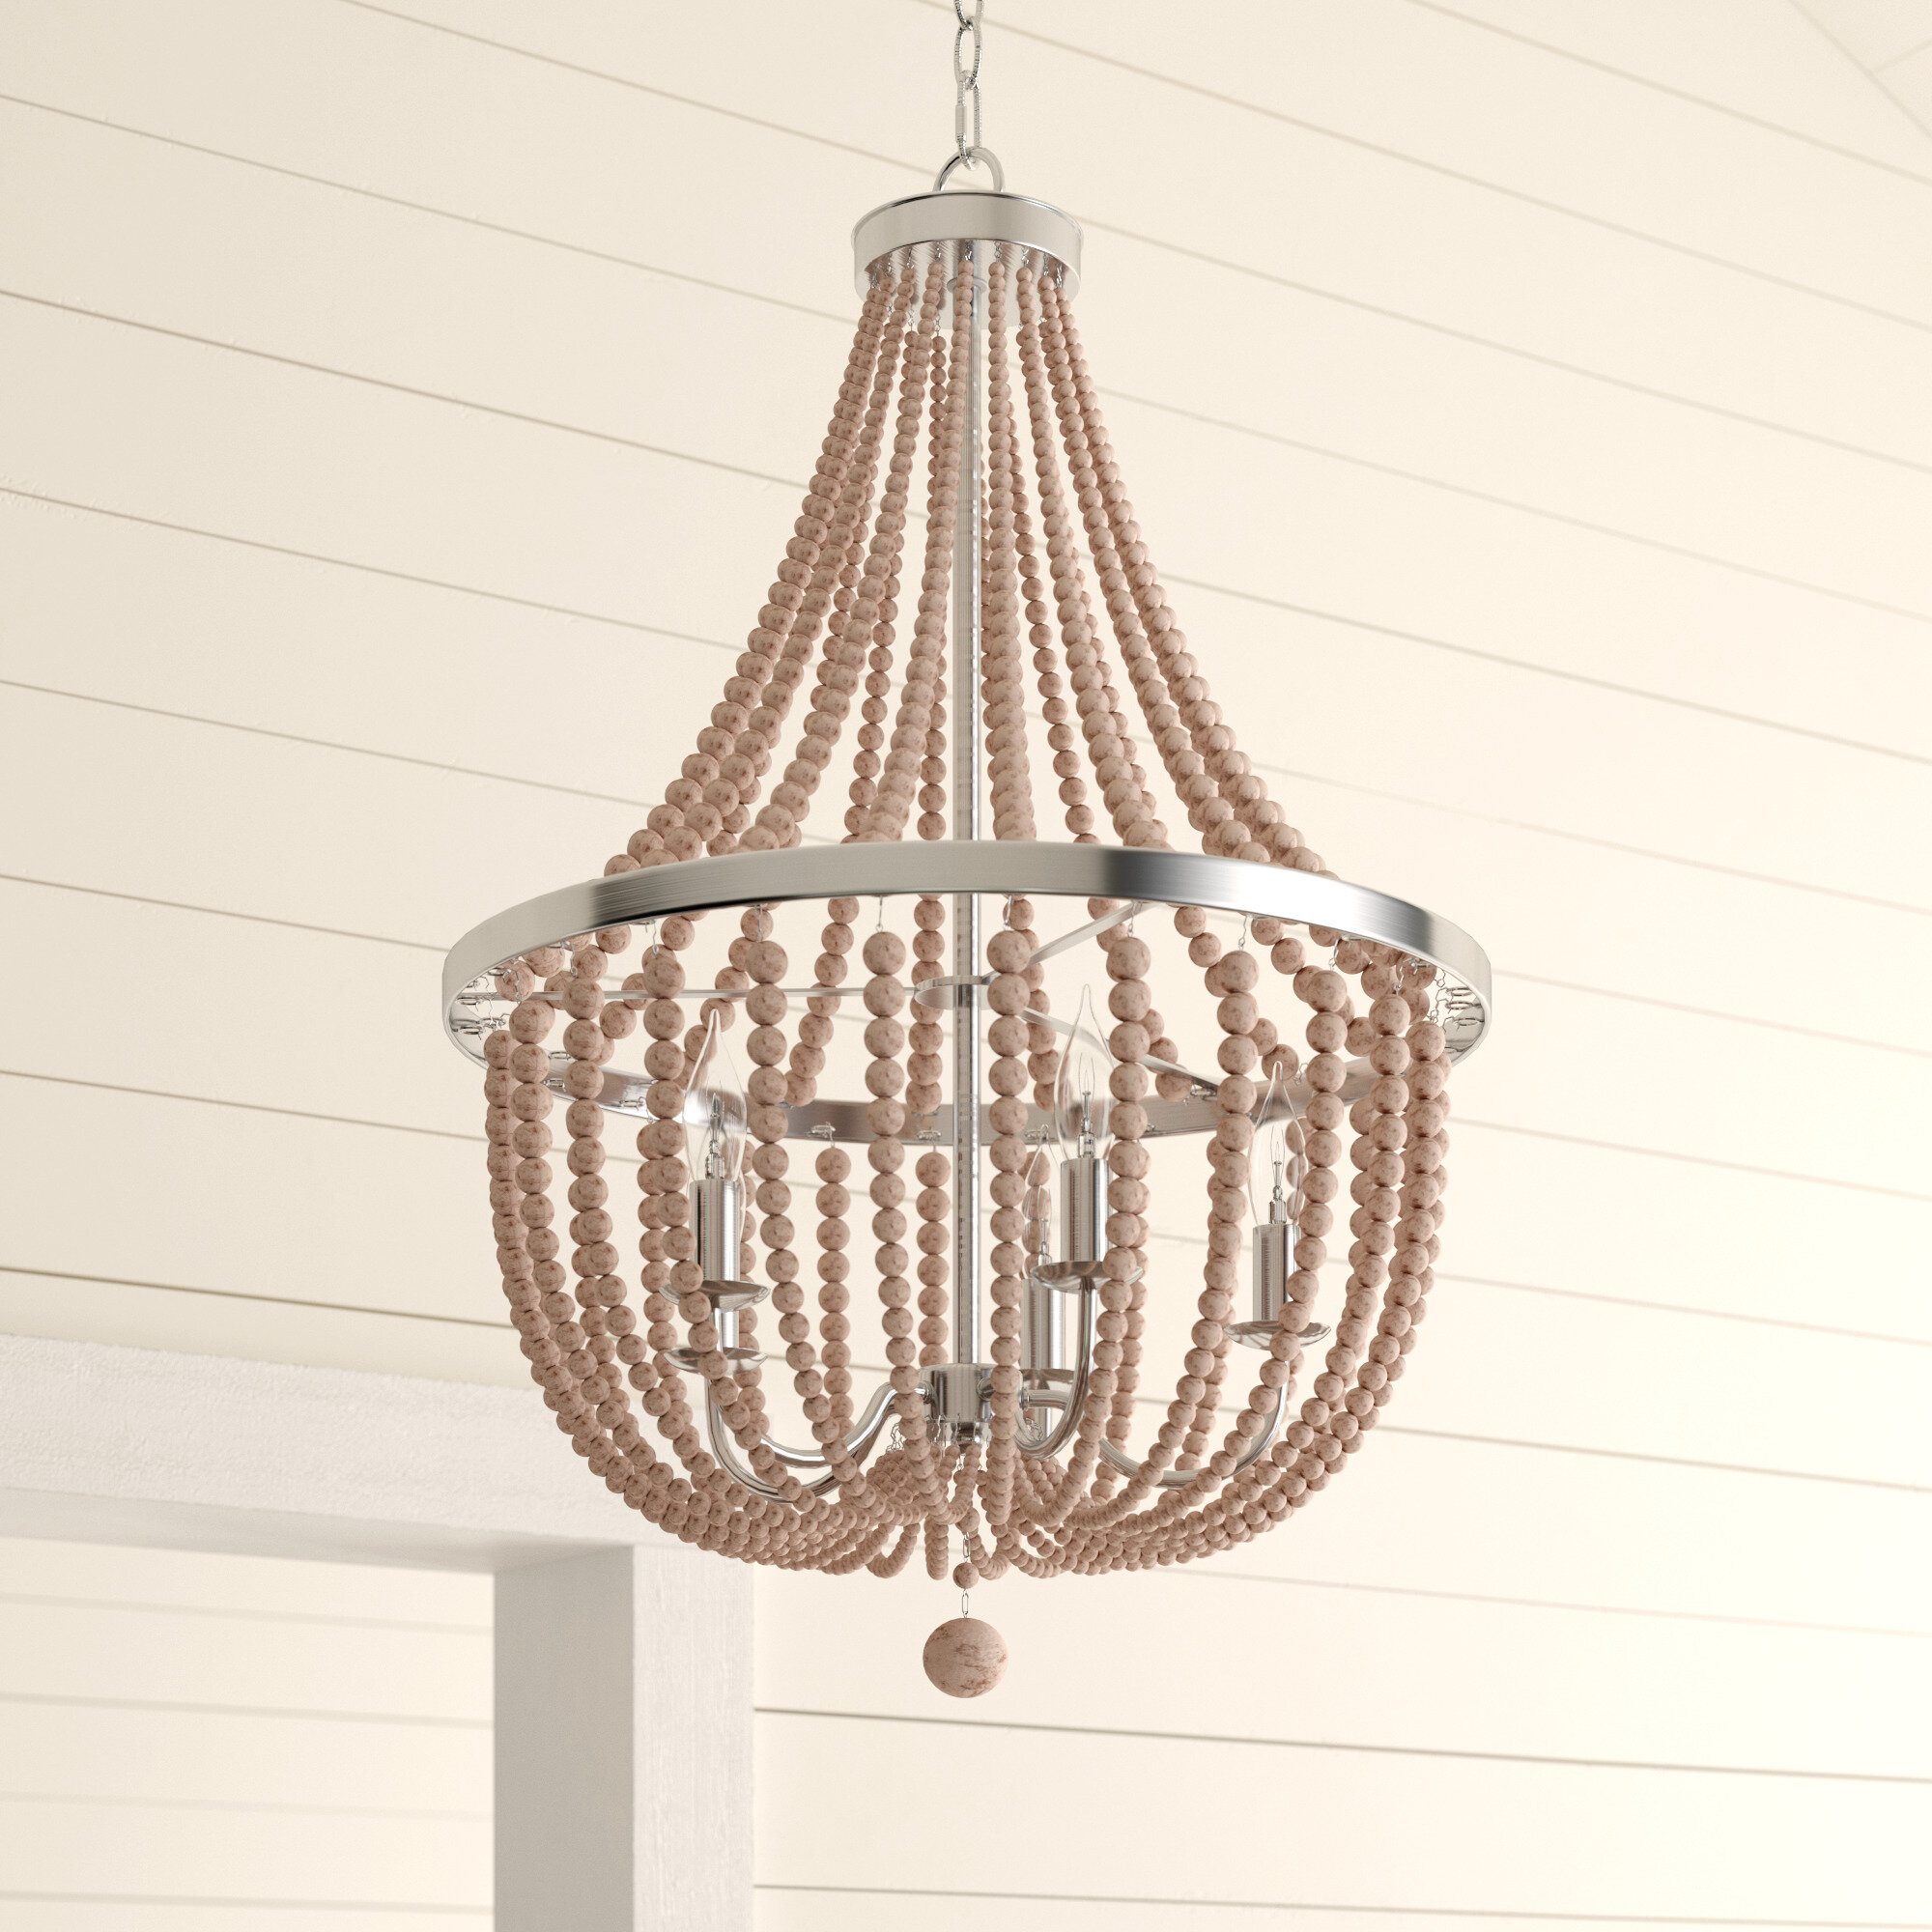 Bay Isle Home Tilden Wood Bead 5 Light Empire Chandelier Intended For Kenna 5 Light Empire Chandeliers (View 11 of 30)